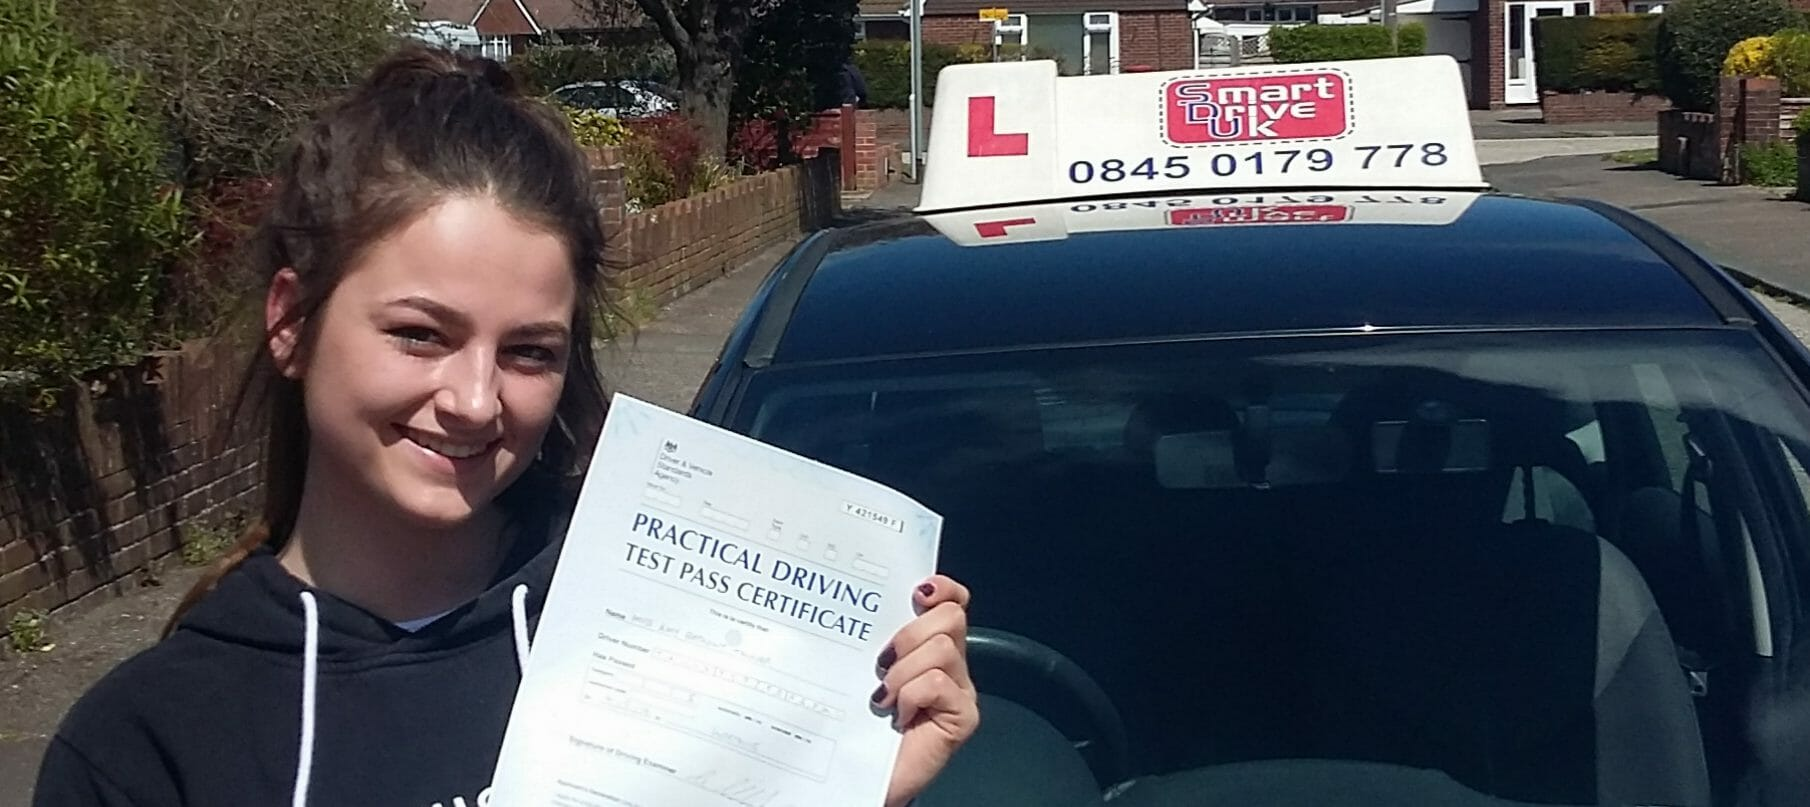 Congratulations to Amy Tanner from Worthing